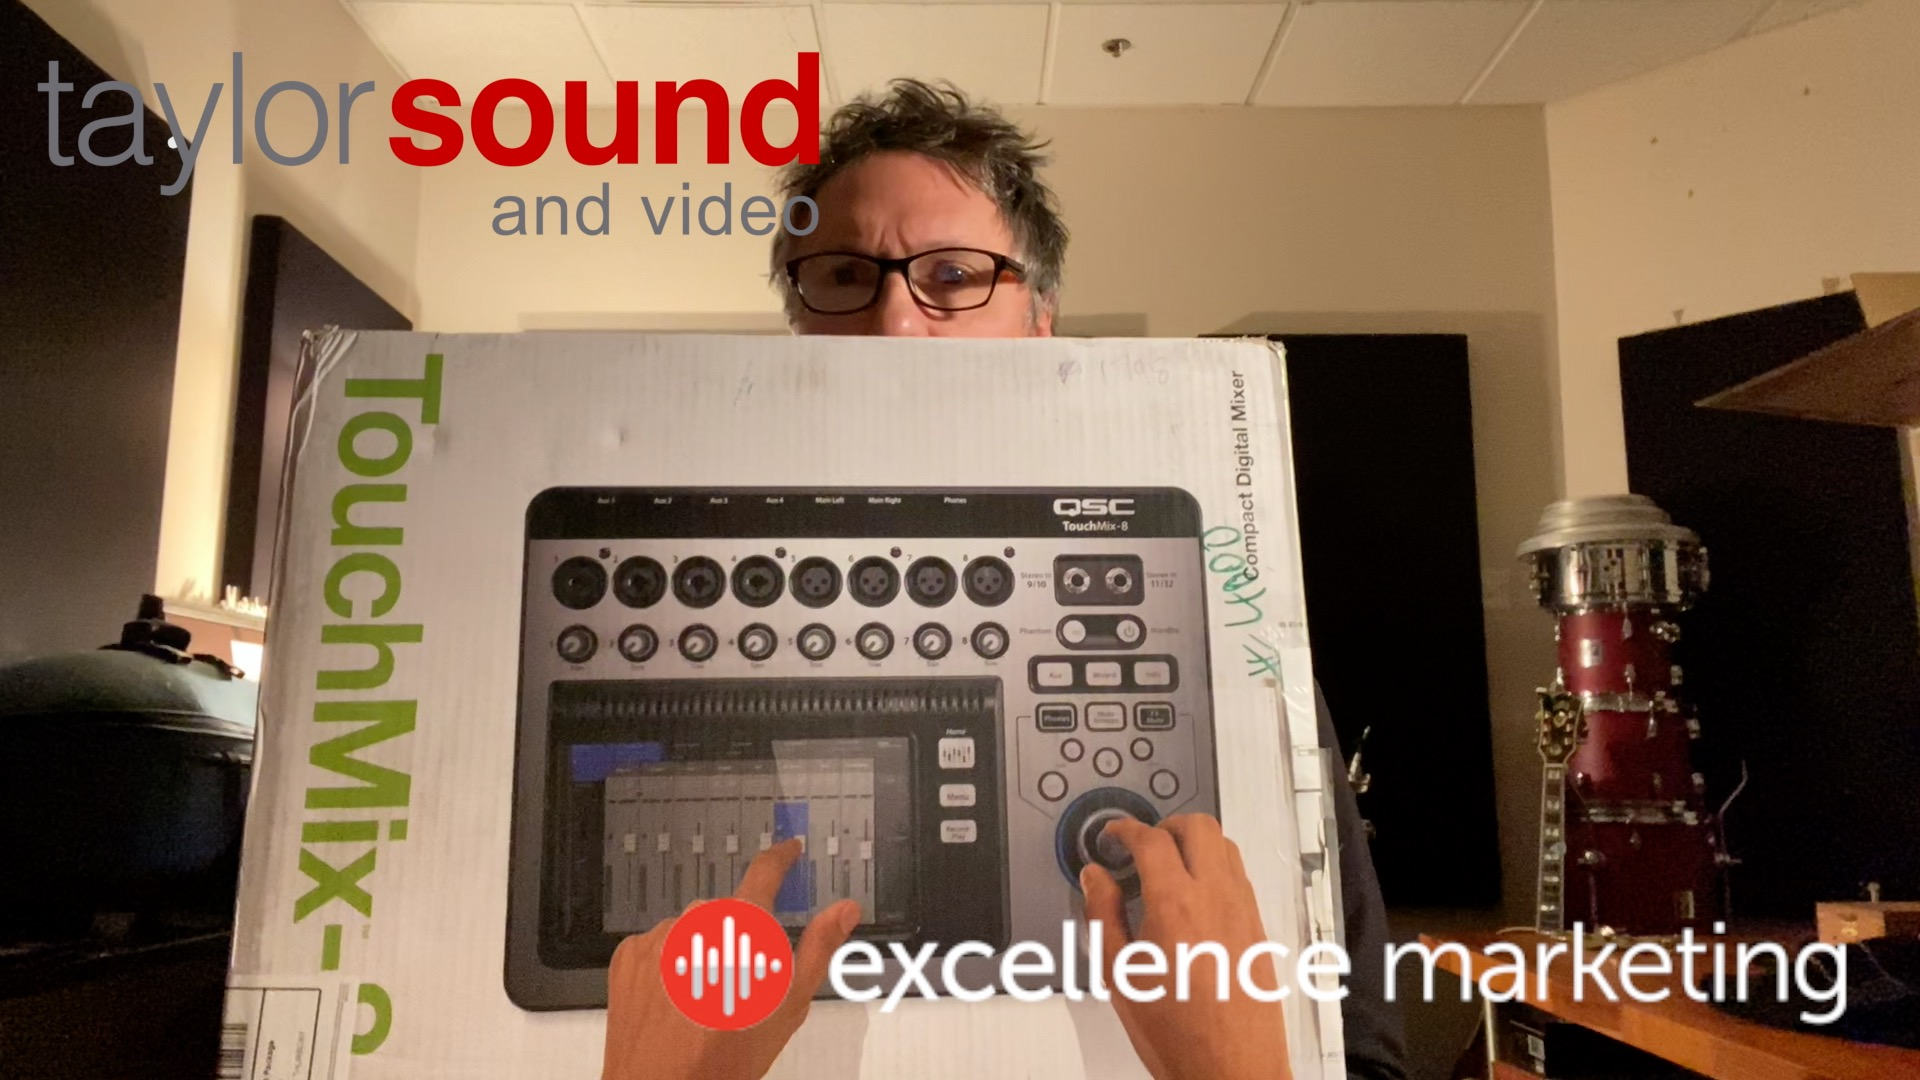 Unboxing the QSC Touchmix 8 Mixing Console